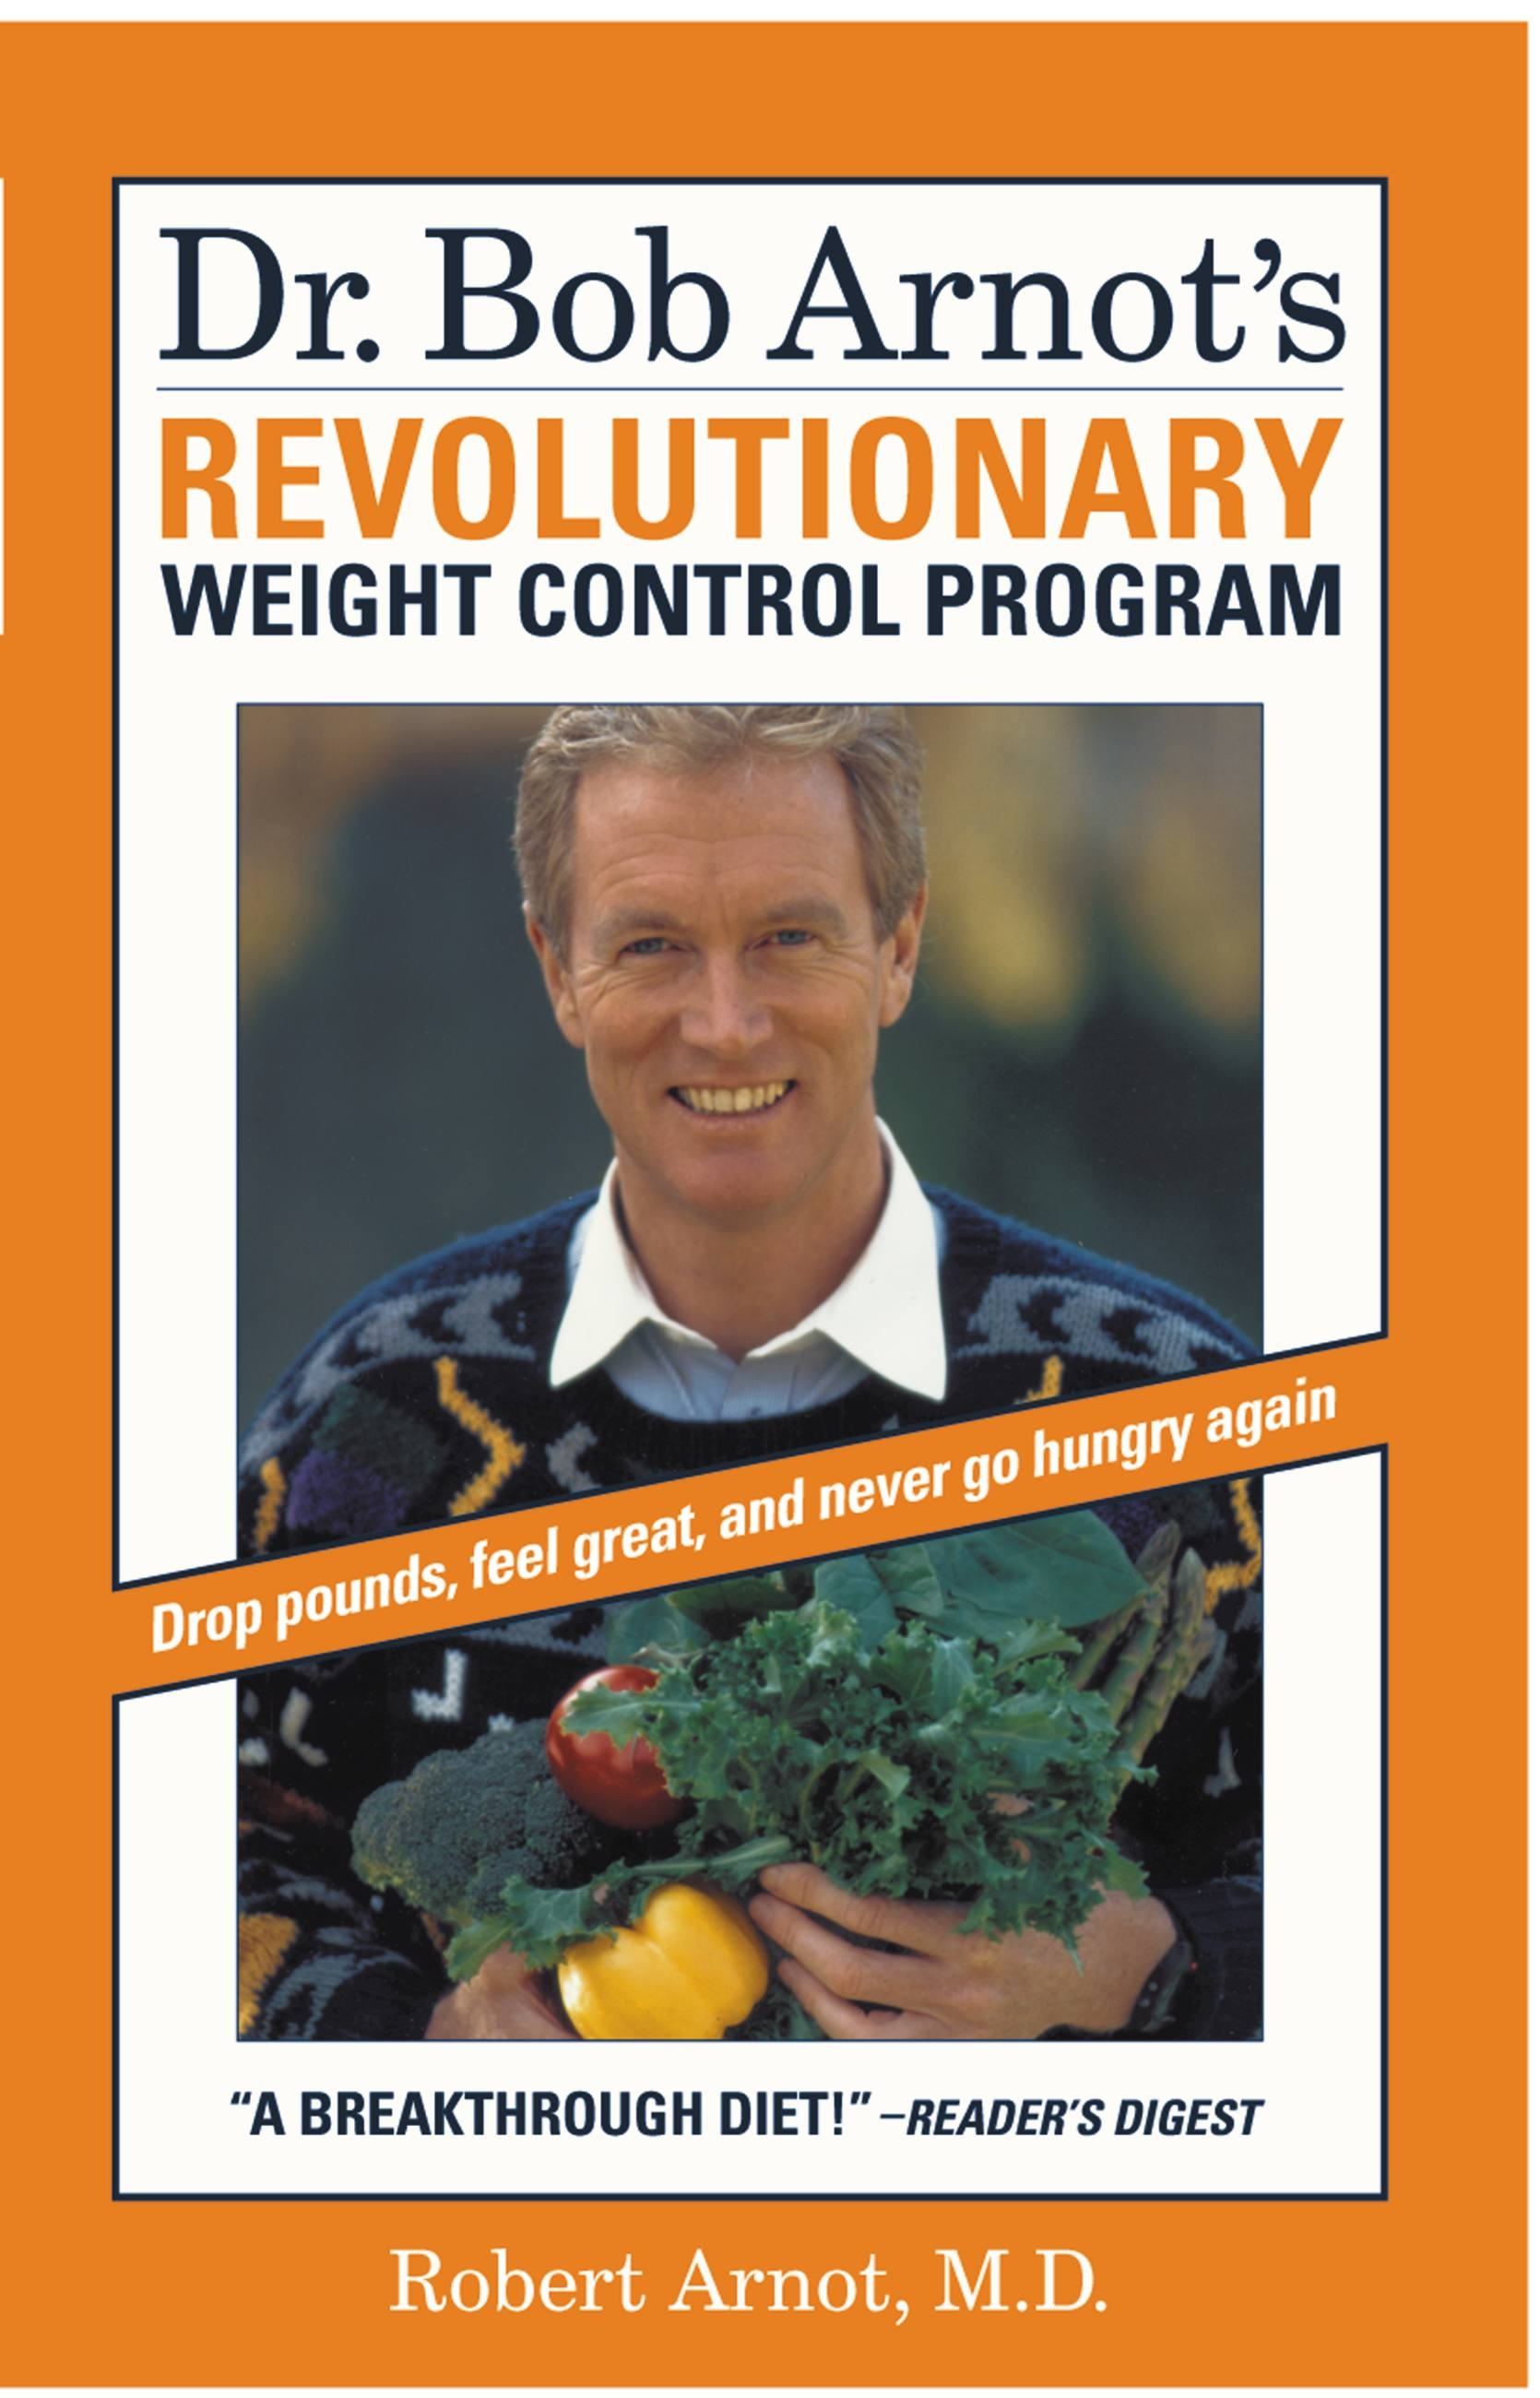 Dr. Bob Arnot's Revolutionary Weight Control Program